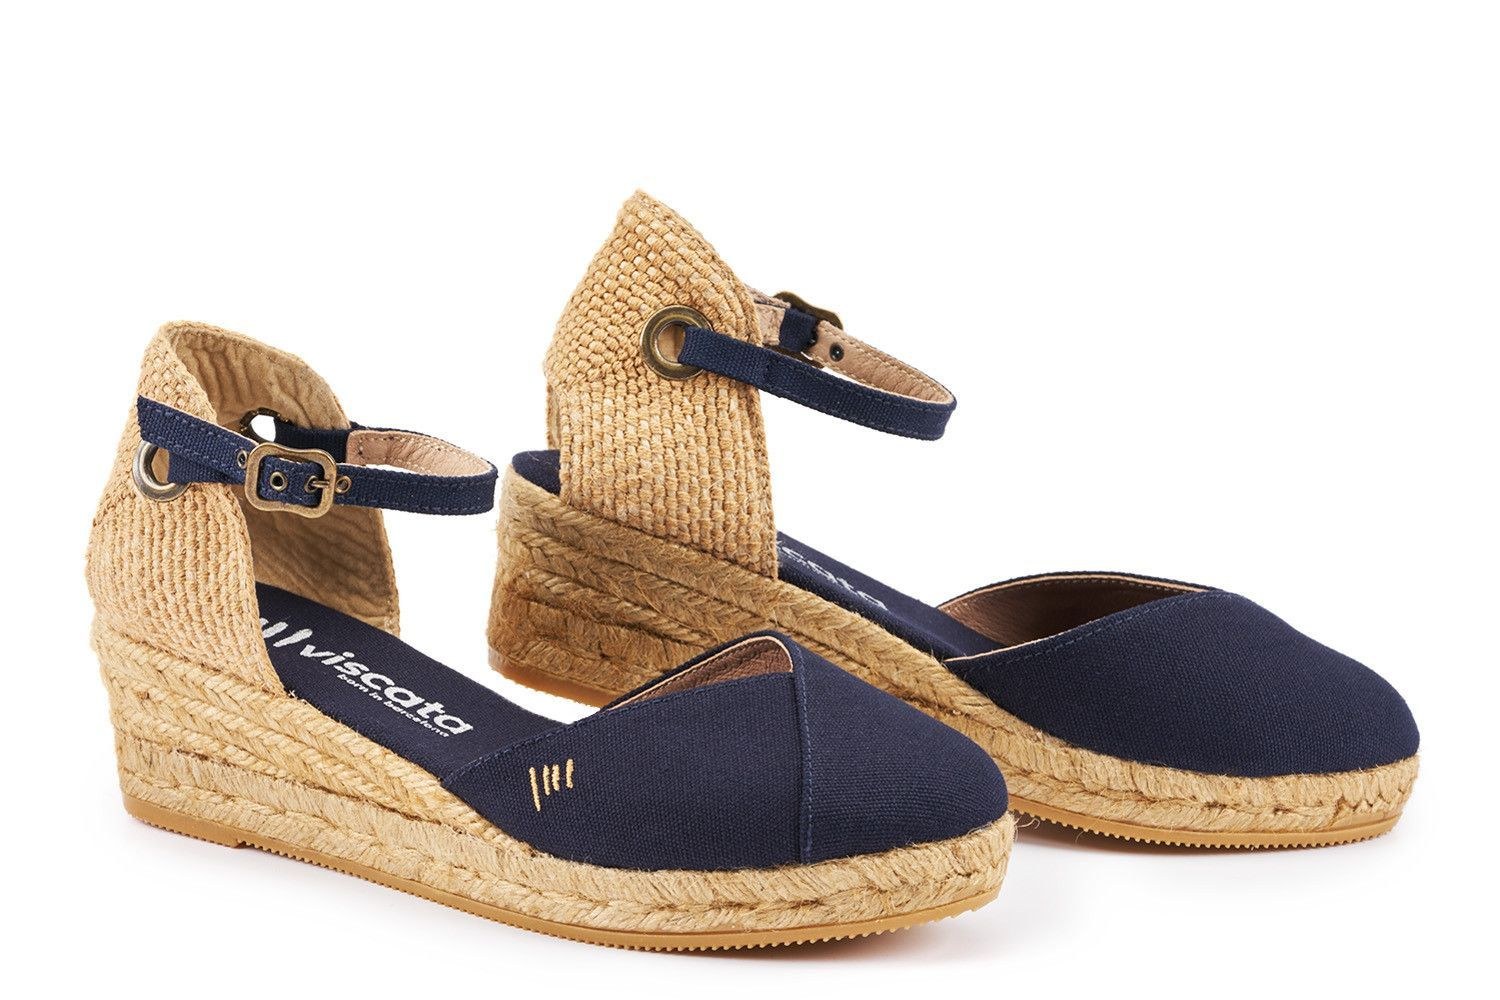 da259747942 Pubol Canvas Espadrille Wedges - Navy